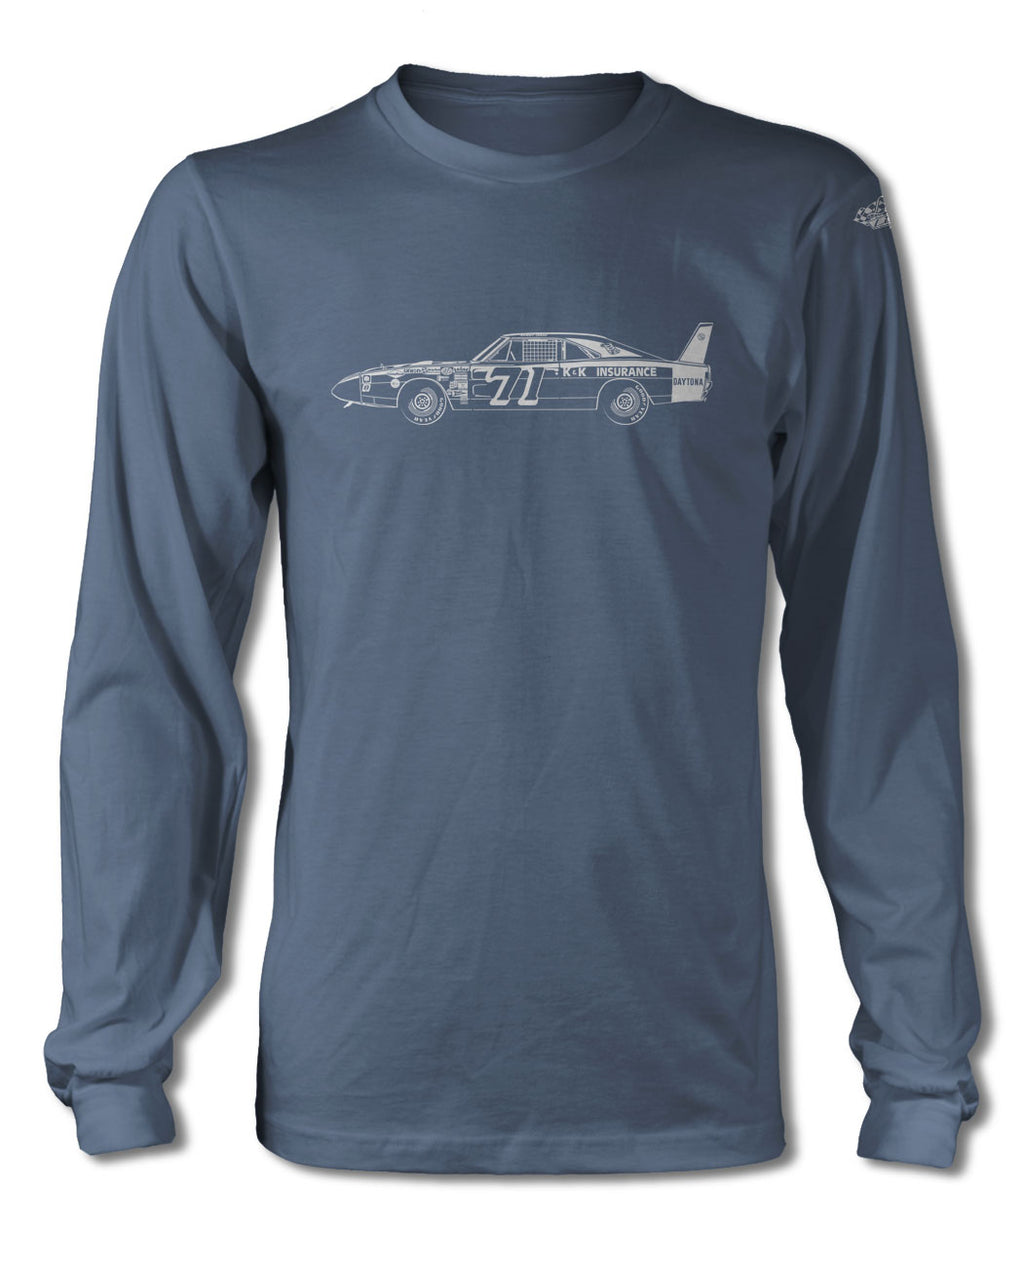 1969 Dodge Charger Daytona Bobby Issac #71 T-Shirt - Long Sleeves - Side View